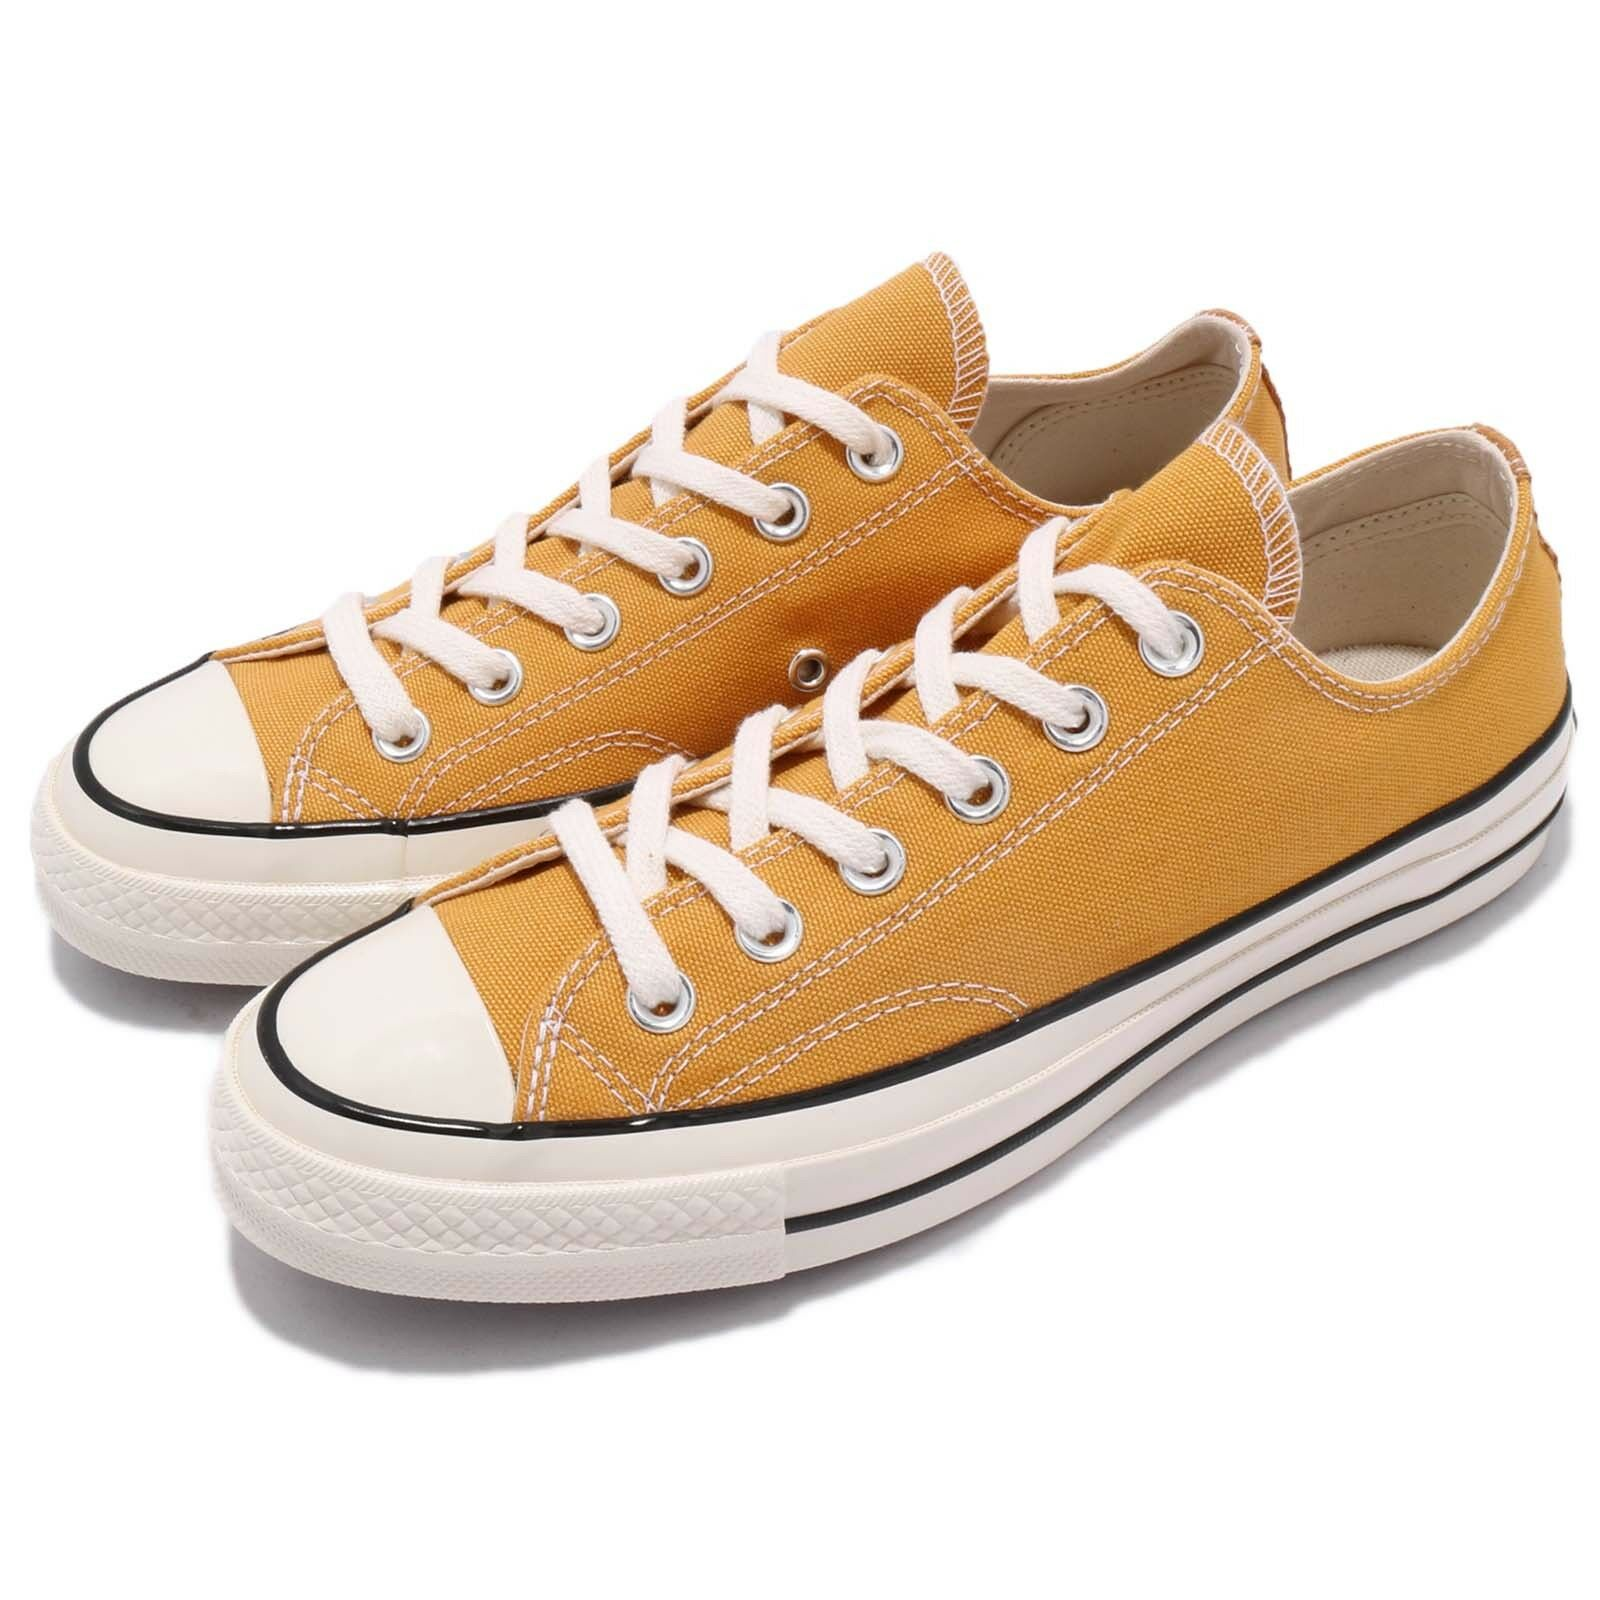 Converse First String Chuck Taylor All Star 1970s Yellow Uomo Donna Shoes 162063C